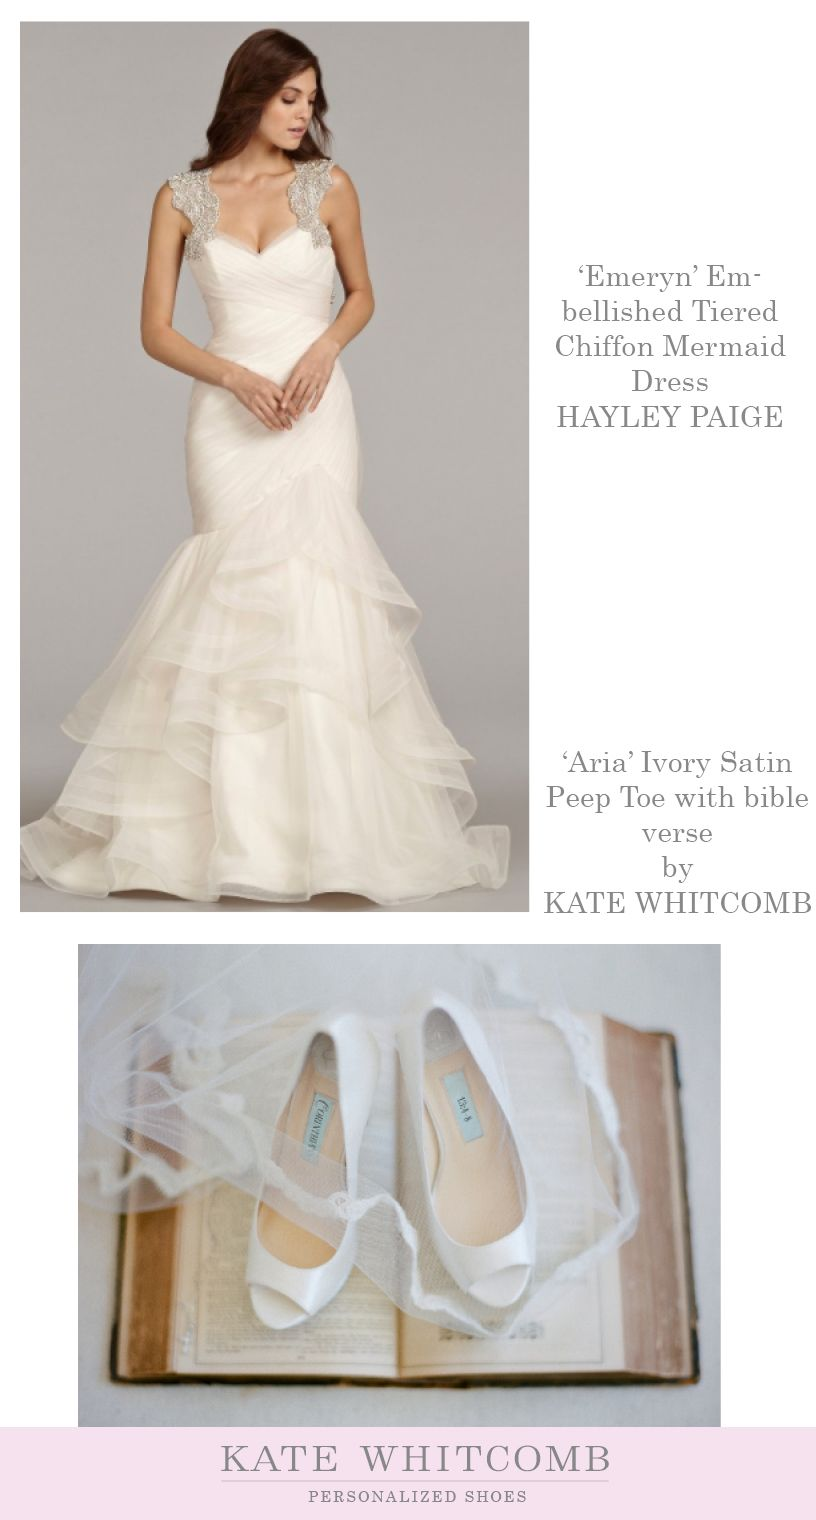 Emeryn Embellished Tiered Chiffon Mermaid Dress By Hayley Paige